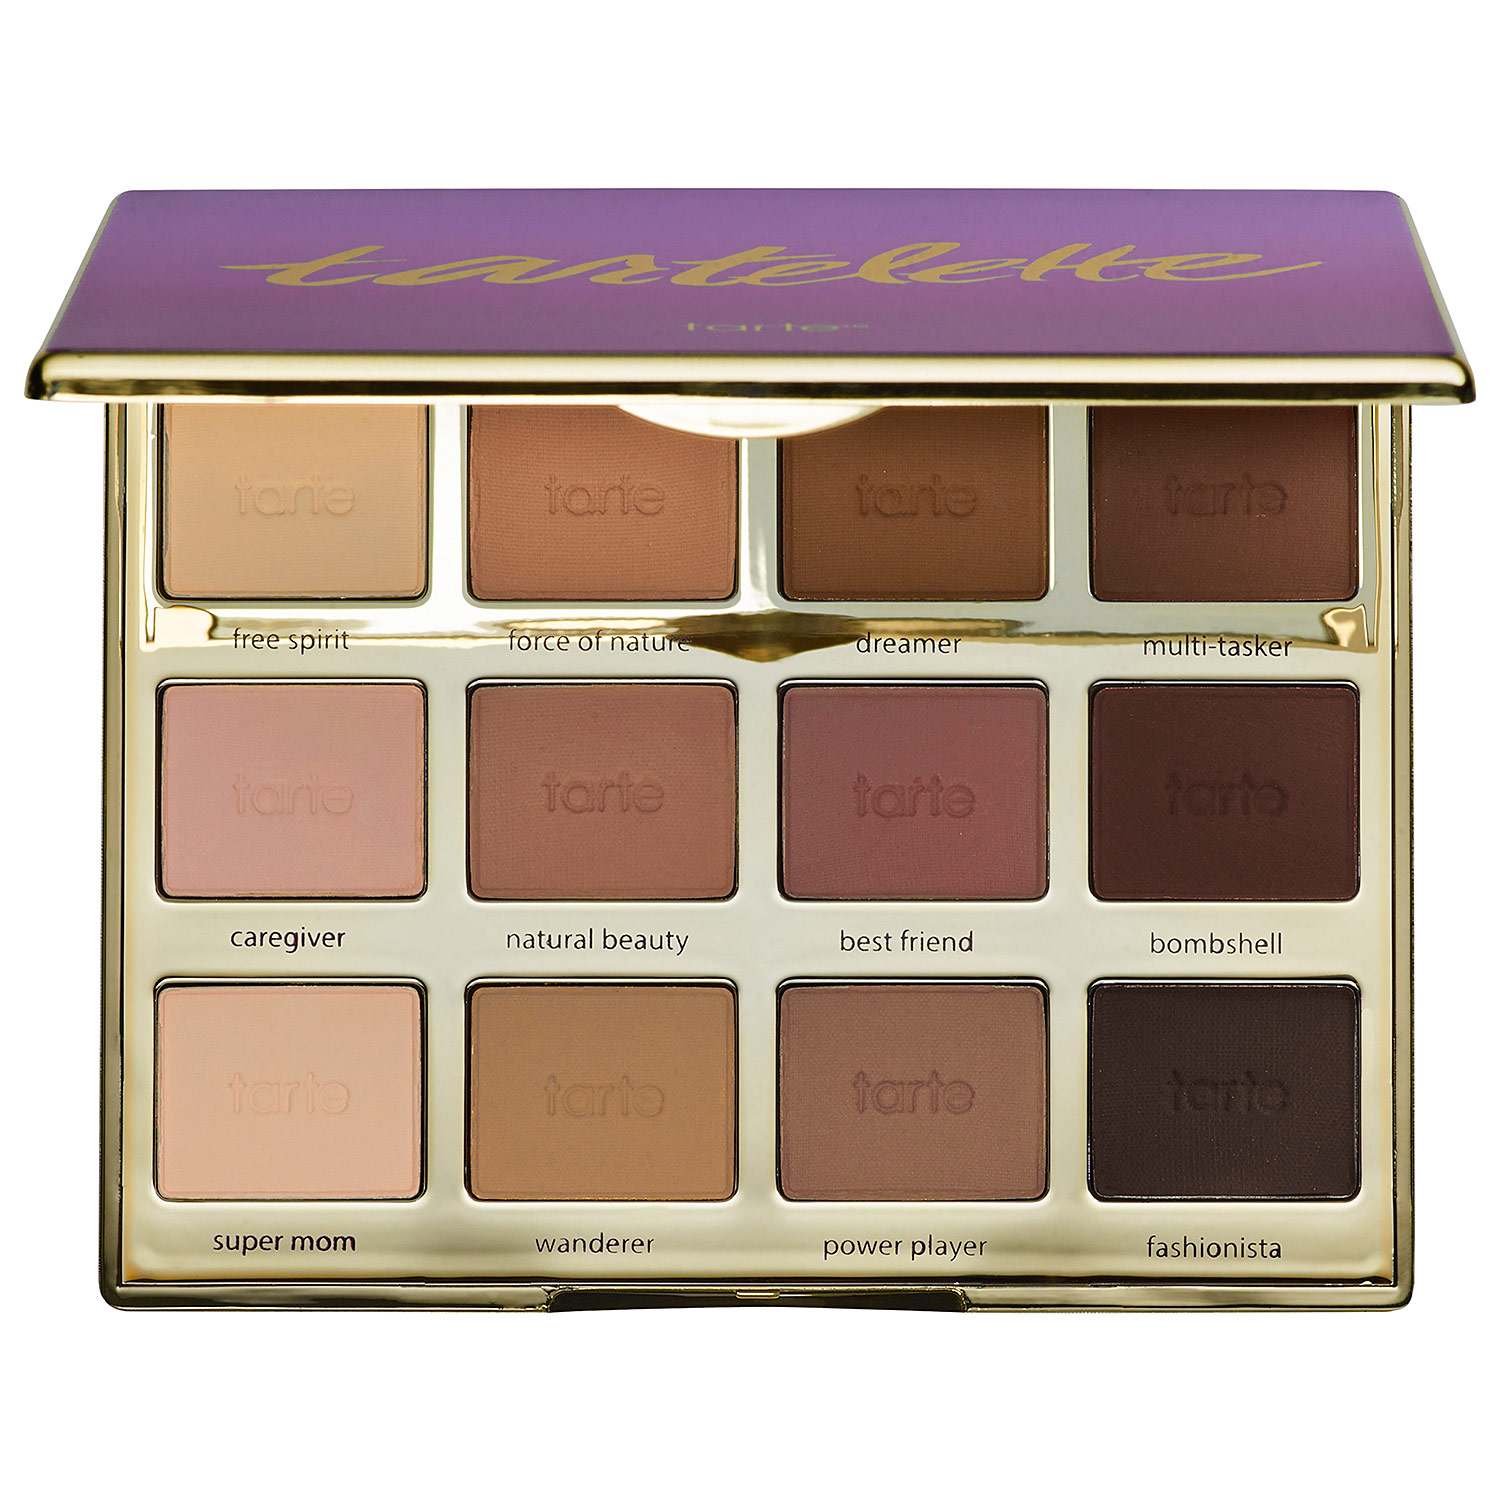 s1659424 main zoom The One Thing: Tartelette Amazonian Clay Matte Eyeshadow Palette